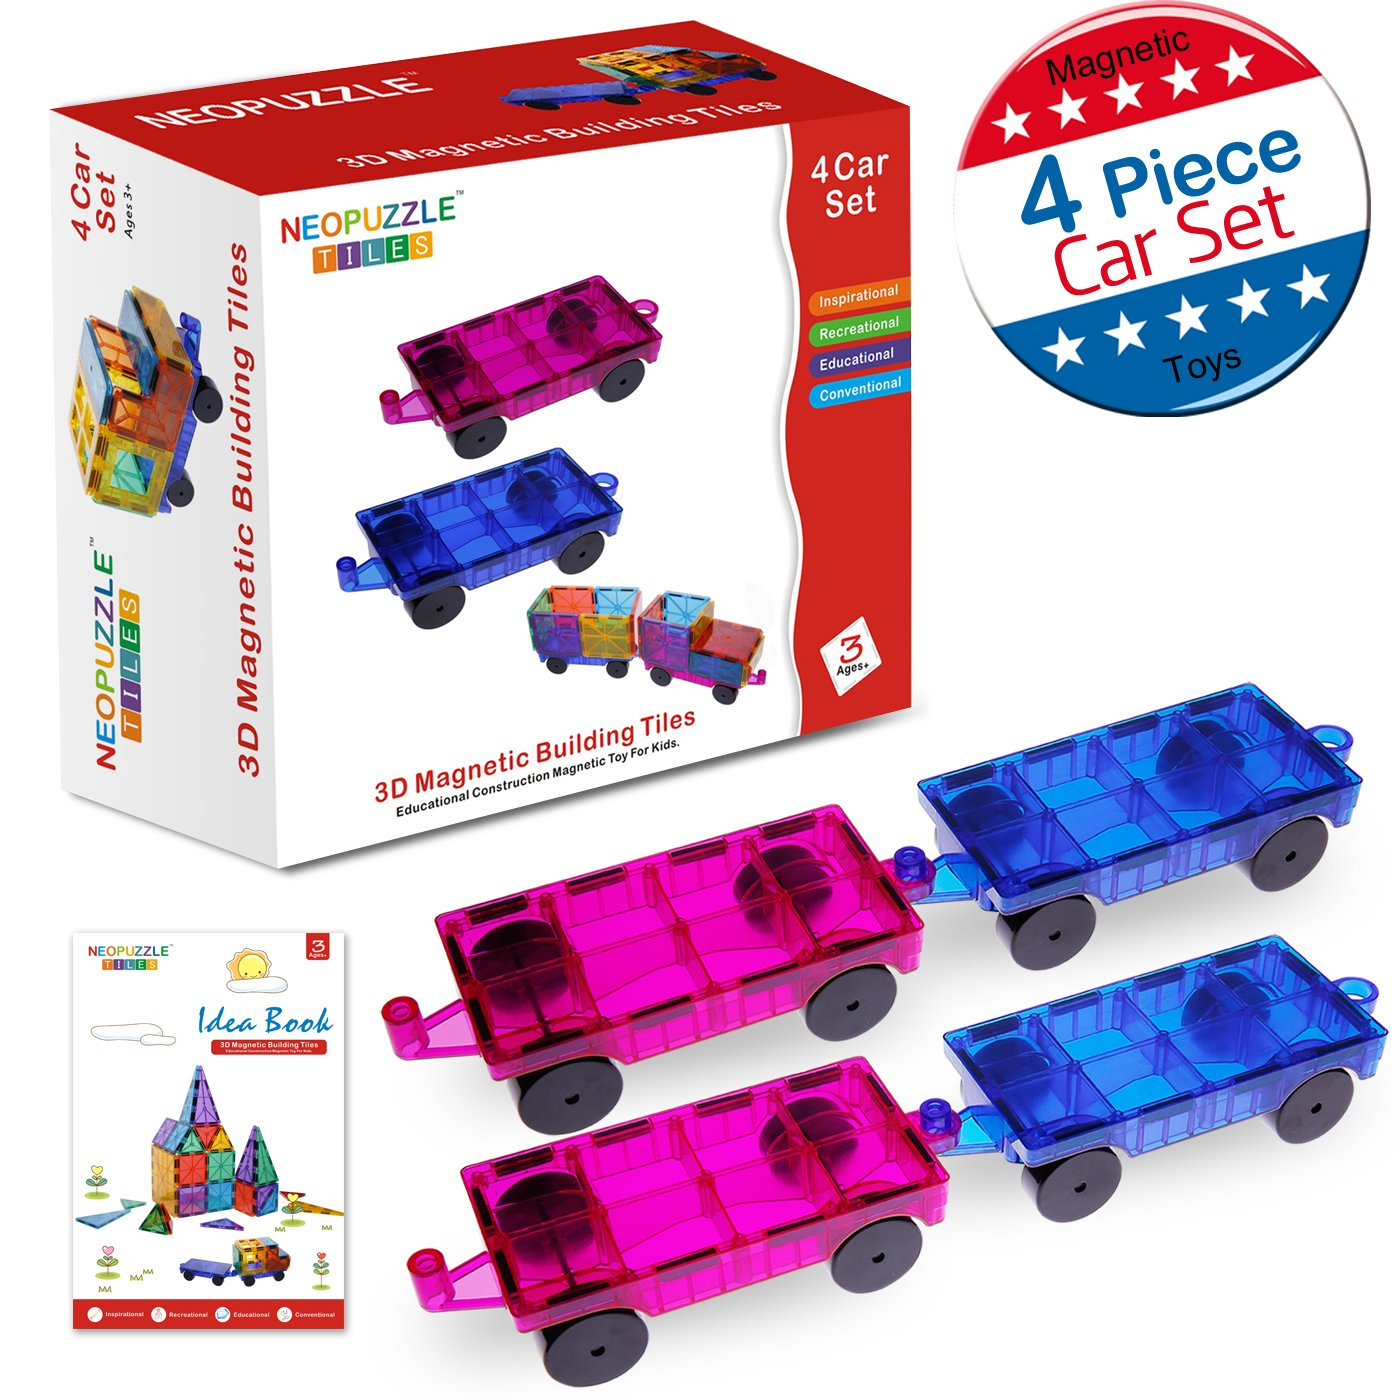 Magnetic Building Tiles 4 Piece Cars Set, Kids Magnet Toys Magnetic Blocks Wheel Bases for Kids Children Review